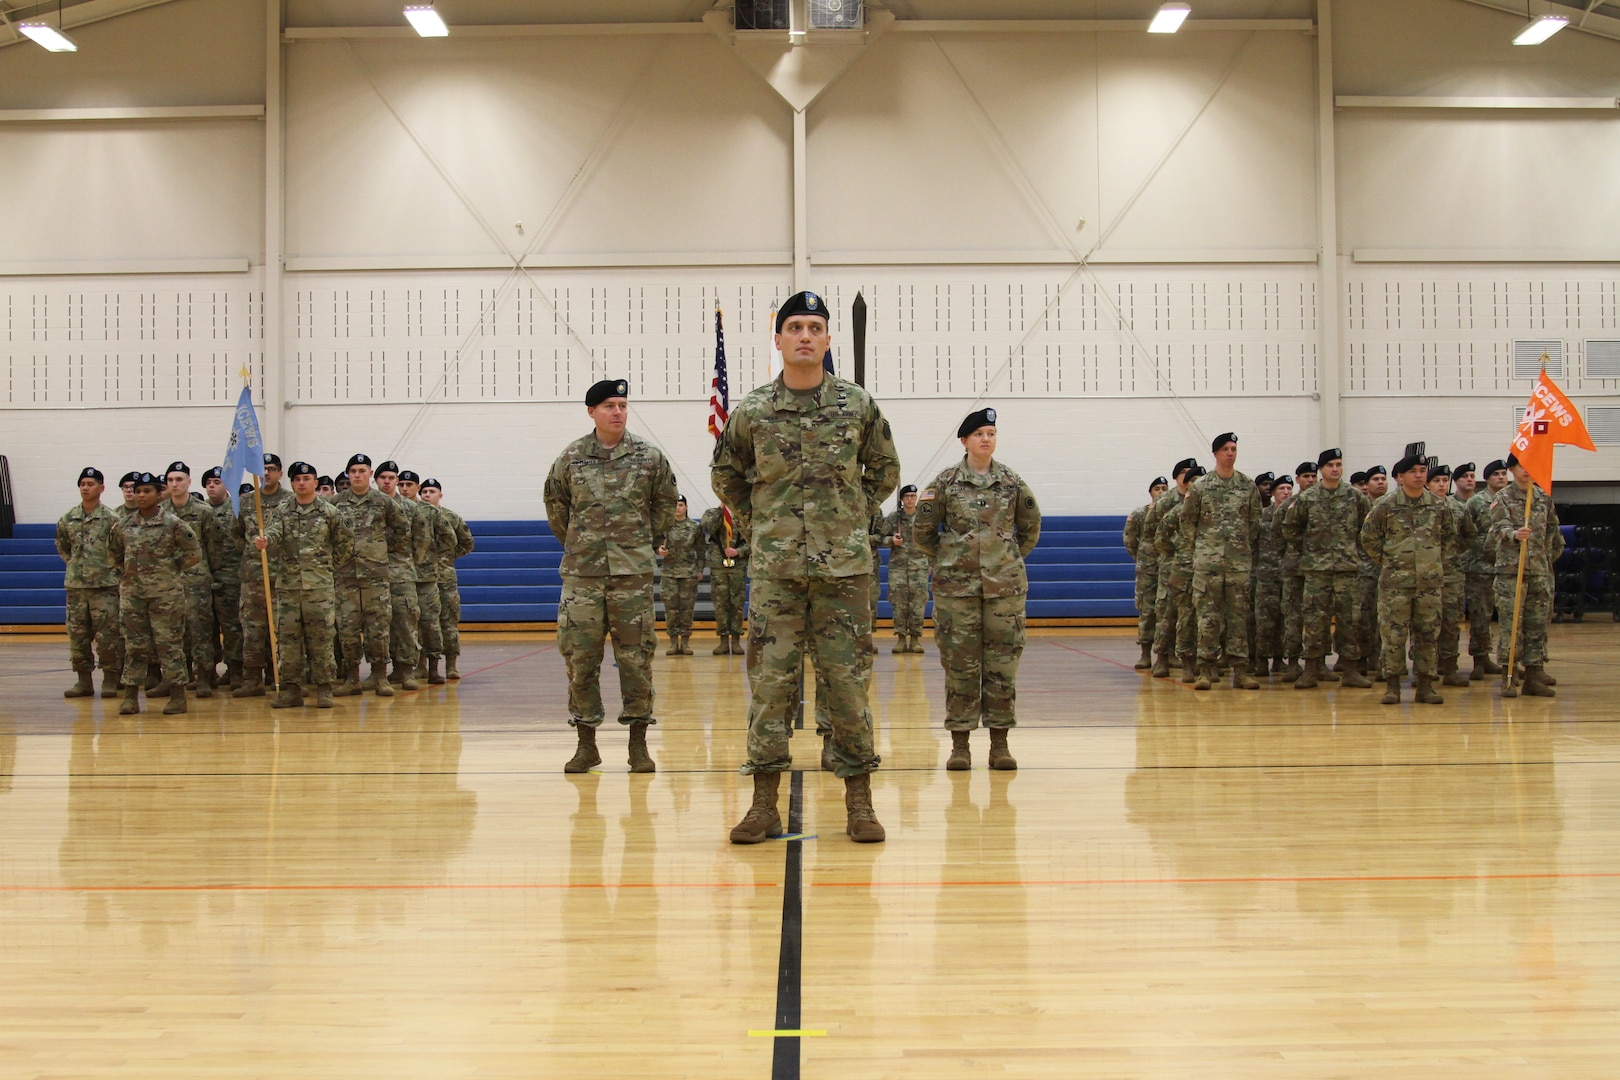 Soldiers of the newly activated Intelligence, Information, Cyber, Electronic Warfare and Space Detachment stand in formation during a ceremony Jan. 11, 2019, at Joint Base Lewis McChord, Washington. The ceremony marked the launch of the first-ever Intelligence, Information, Cyber, Electronic Warfare and Space Detachment in the U.S. Army. I2CEWS was designed to integrate cyber warfare, electronic warfare and space capabilities. 